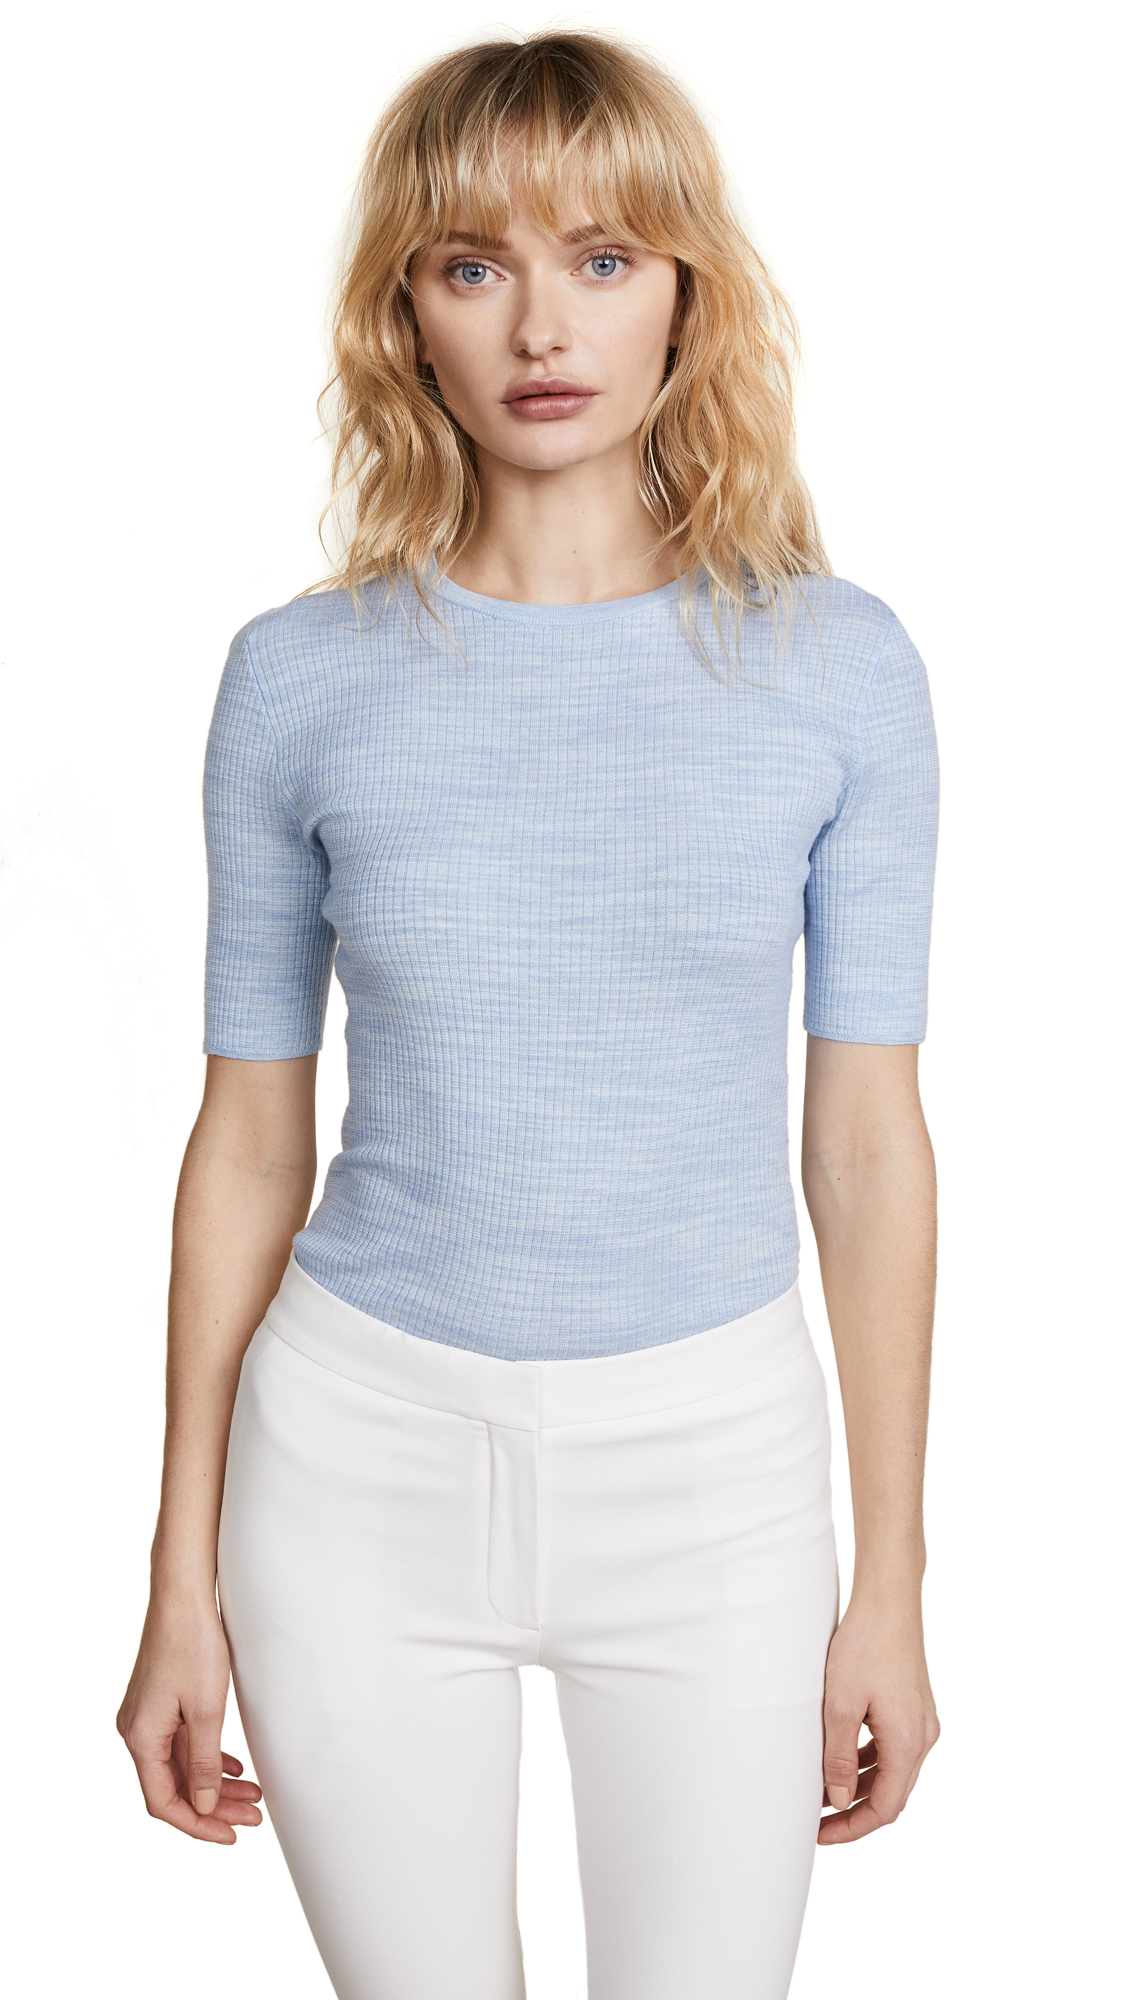 Theory Short Sleeve Fitted Crew - Heather Paloma/White